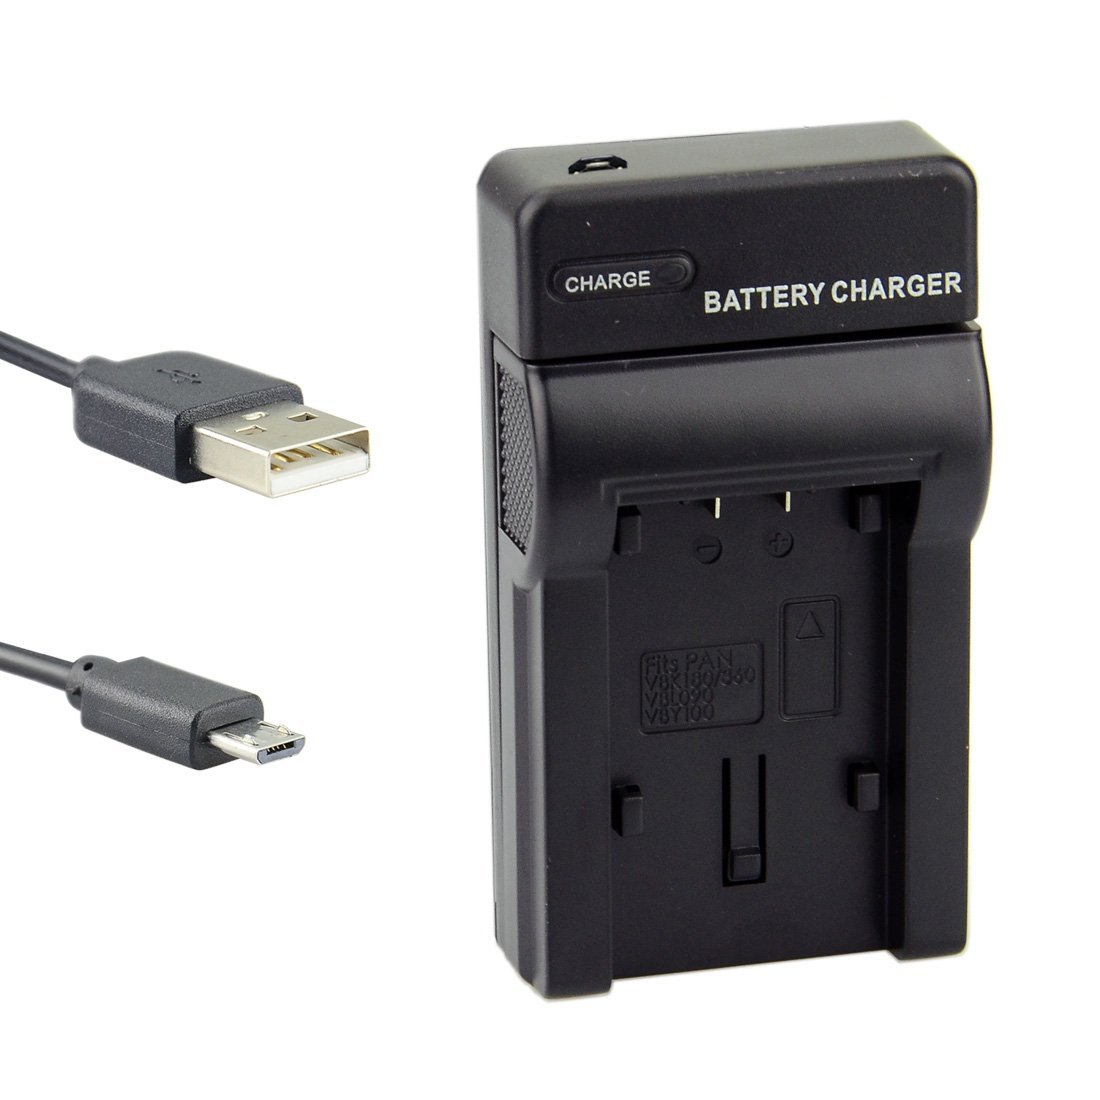 DSTE Micro USB Battery Charger for Panasonic VW-VBK180 VW-VBK360 VW-VBY100